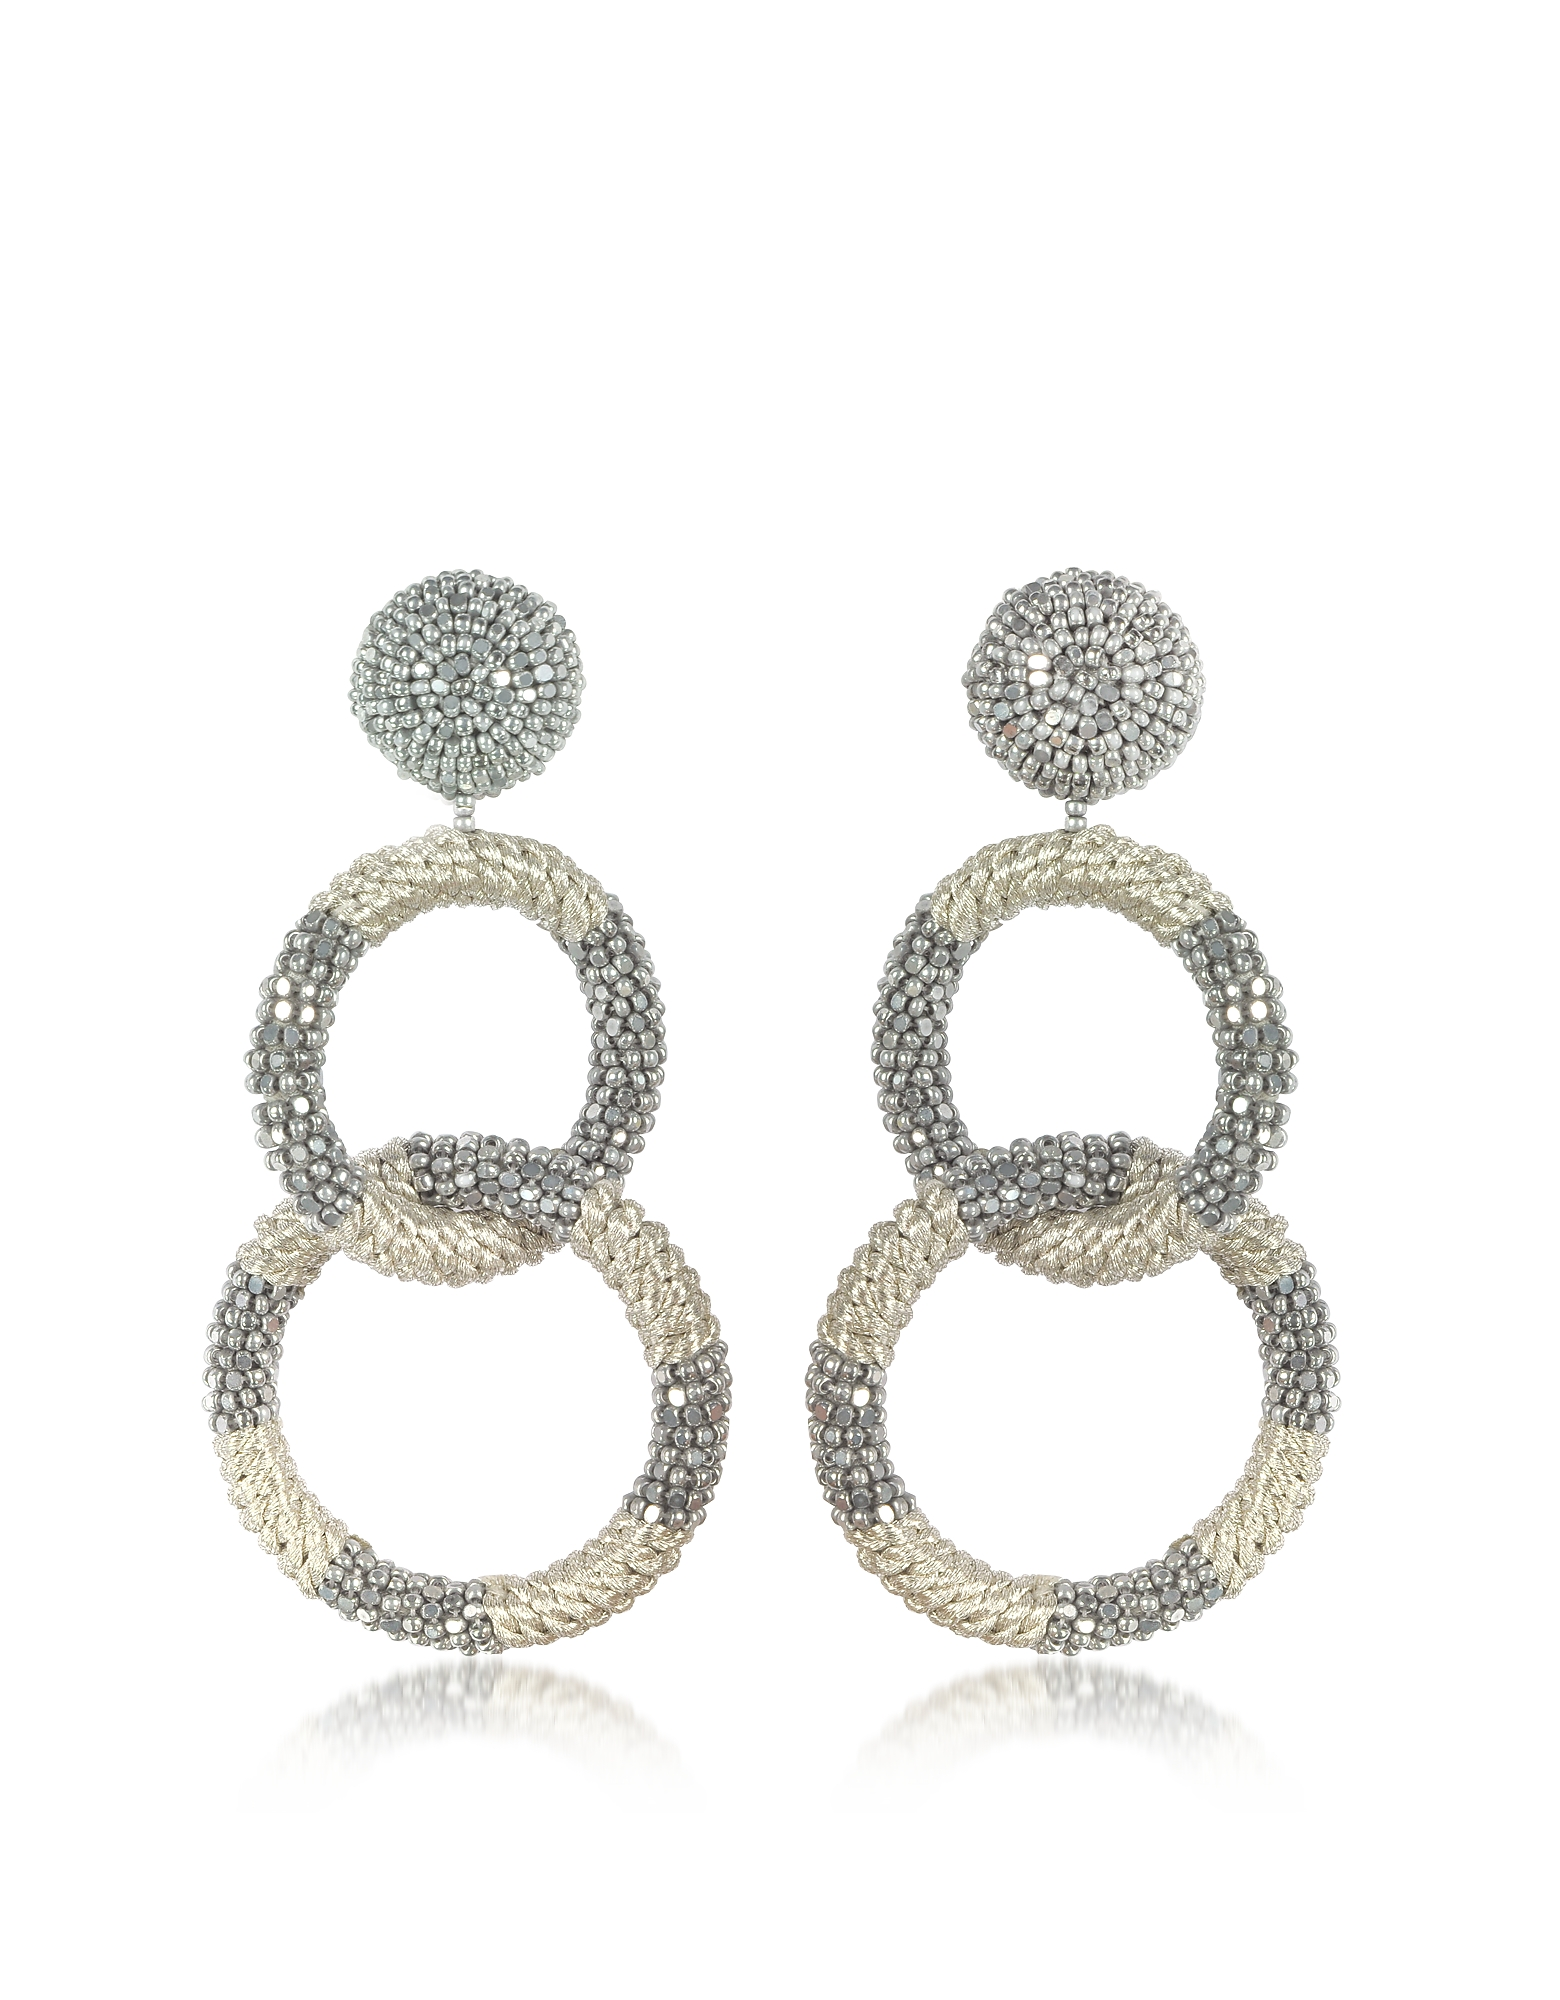 Oscar de la Renta Earrings, Silver 2 Hoop Earrings